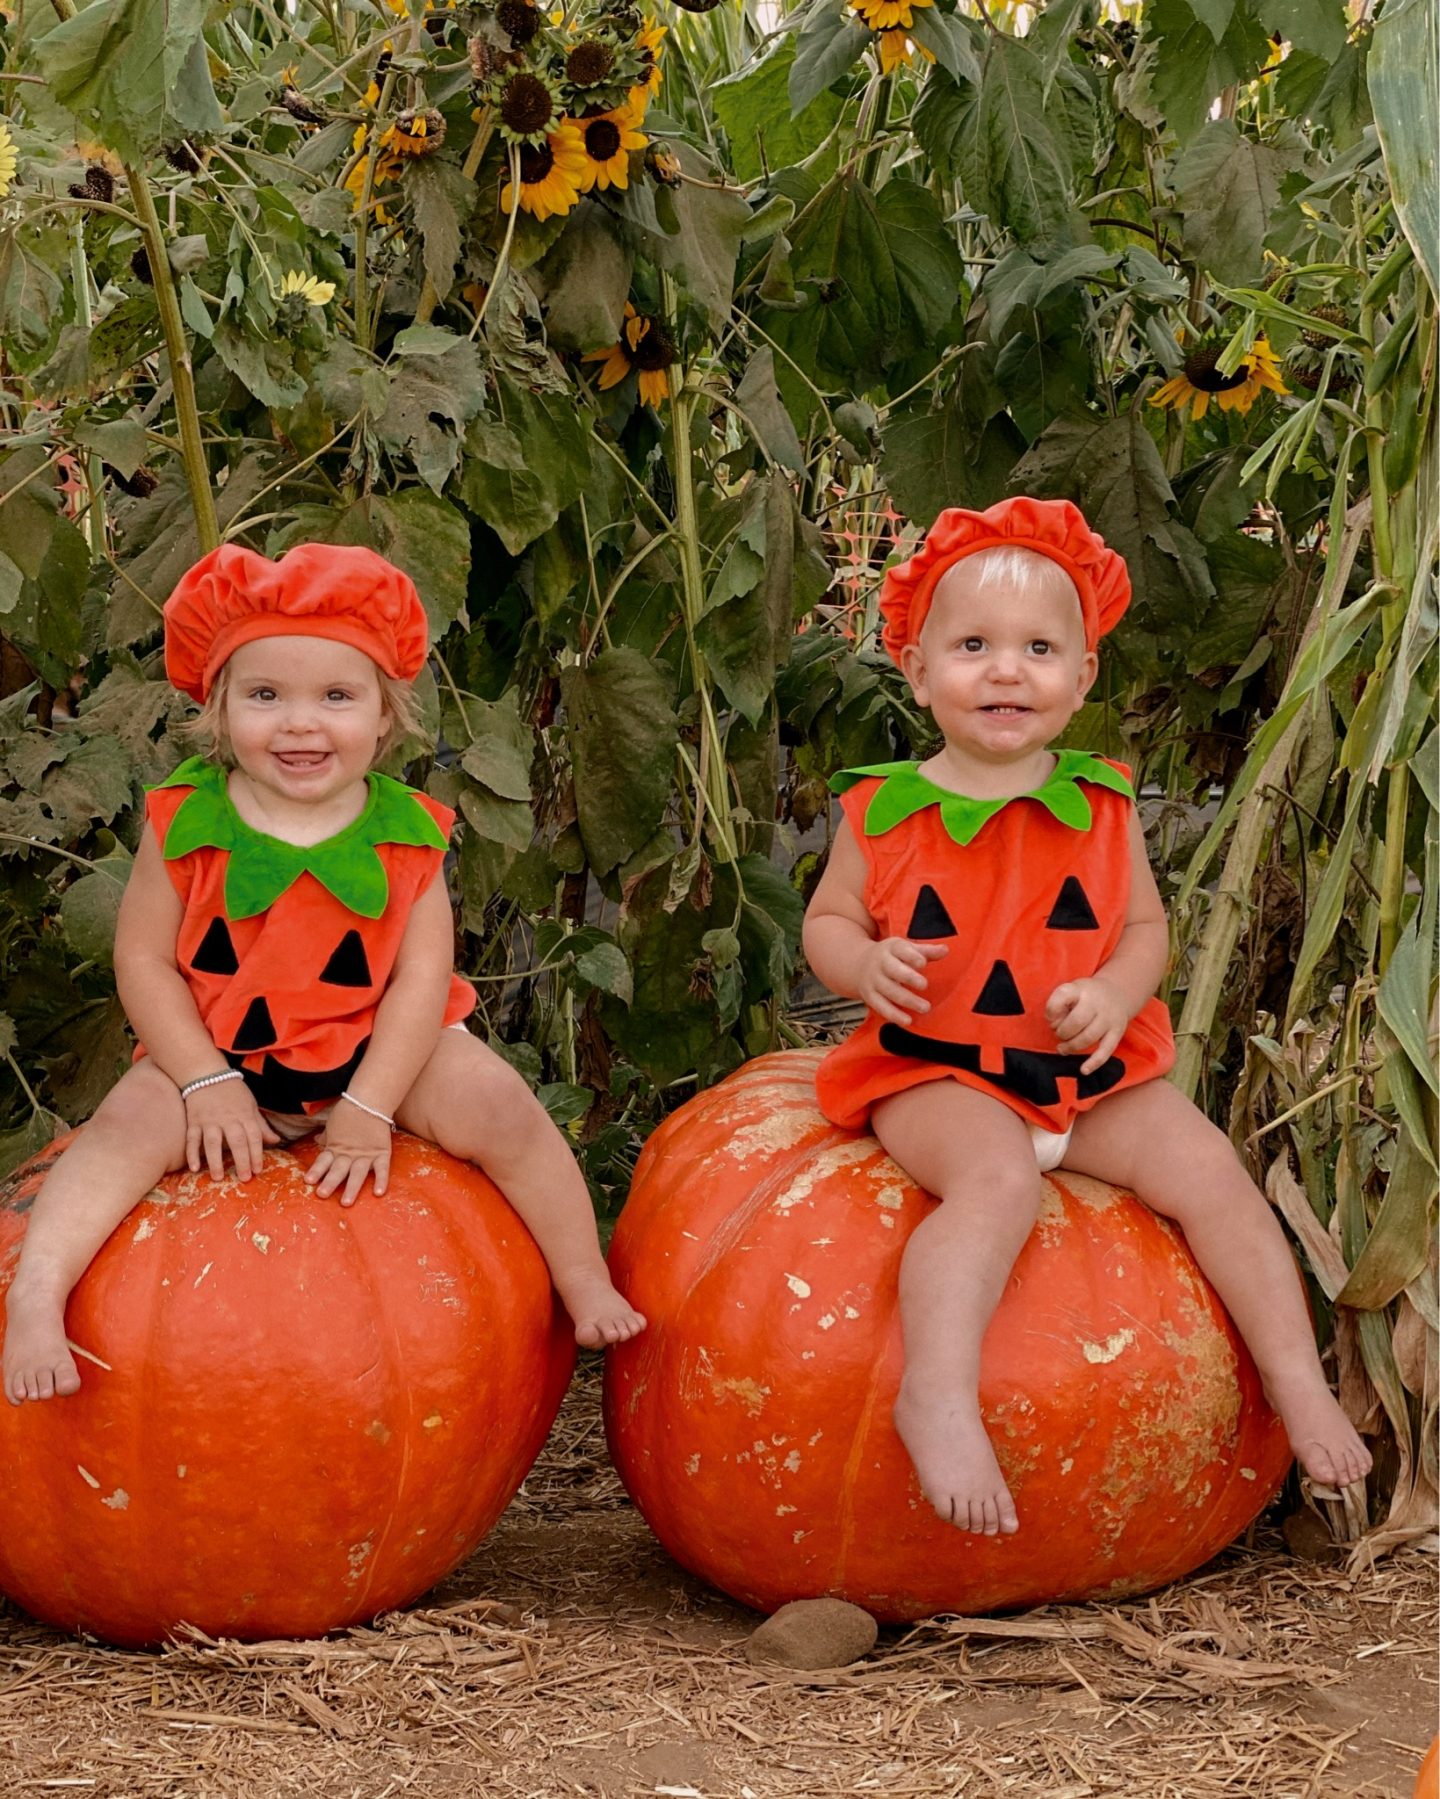 Family Halloween Costumes by popular San Diego lifestyle blog, Navy Grace: image of two young kids dressed up as pumpkins and sitting on top of two large pumpkins.